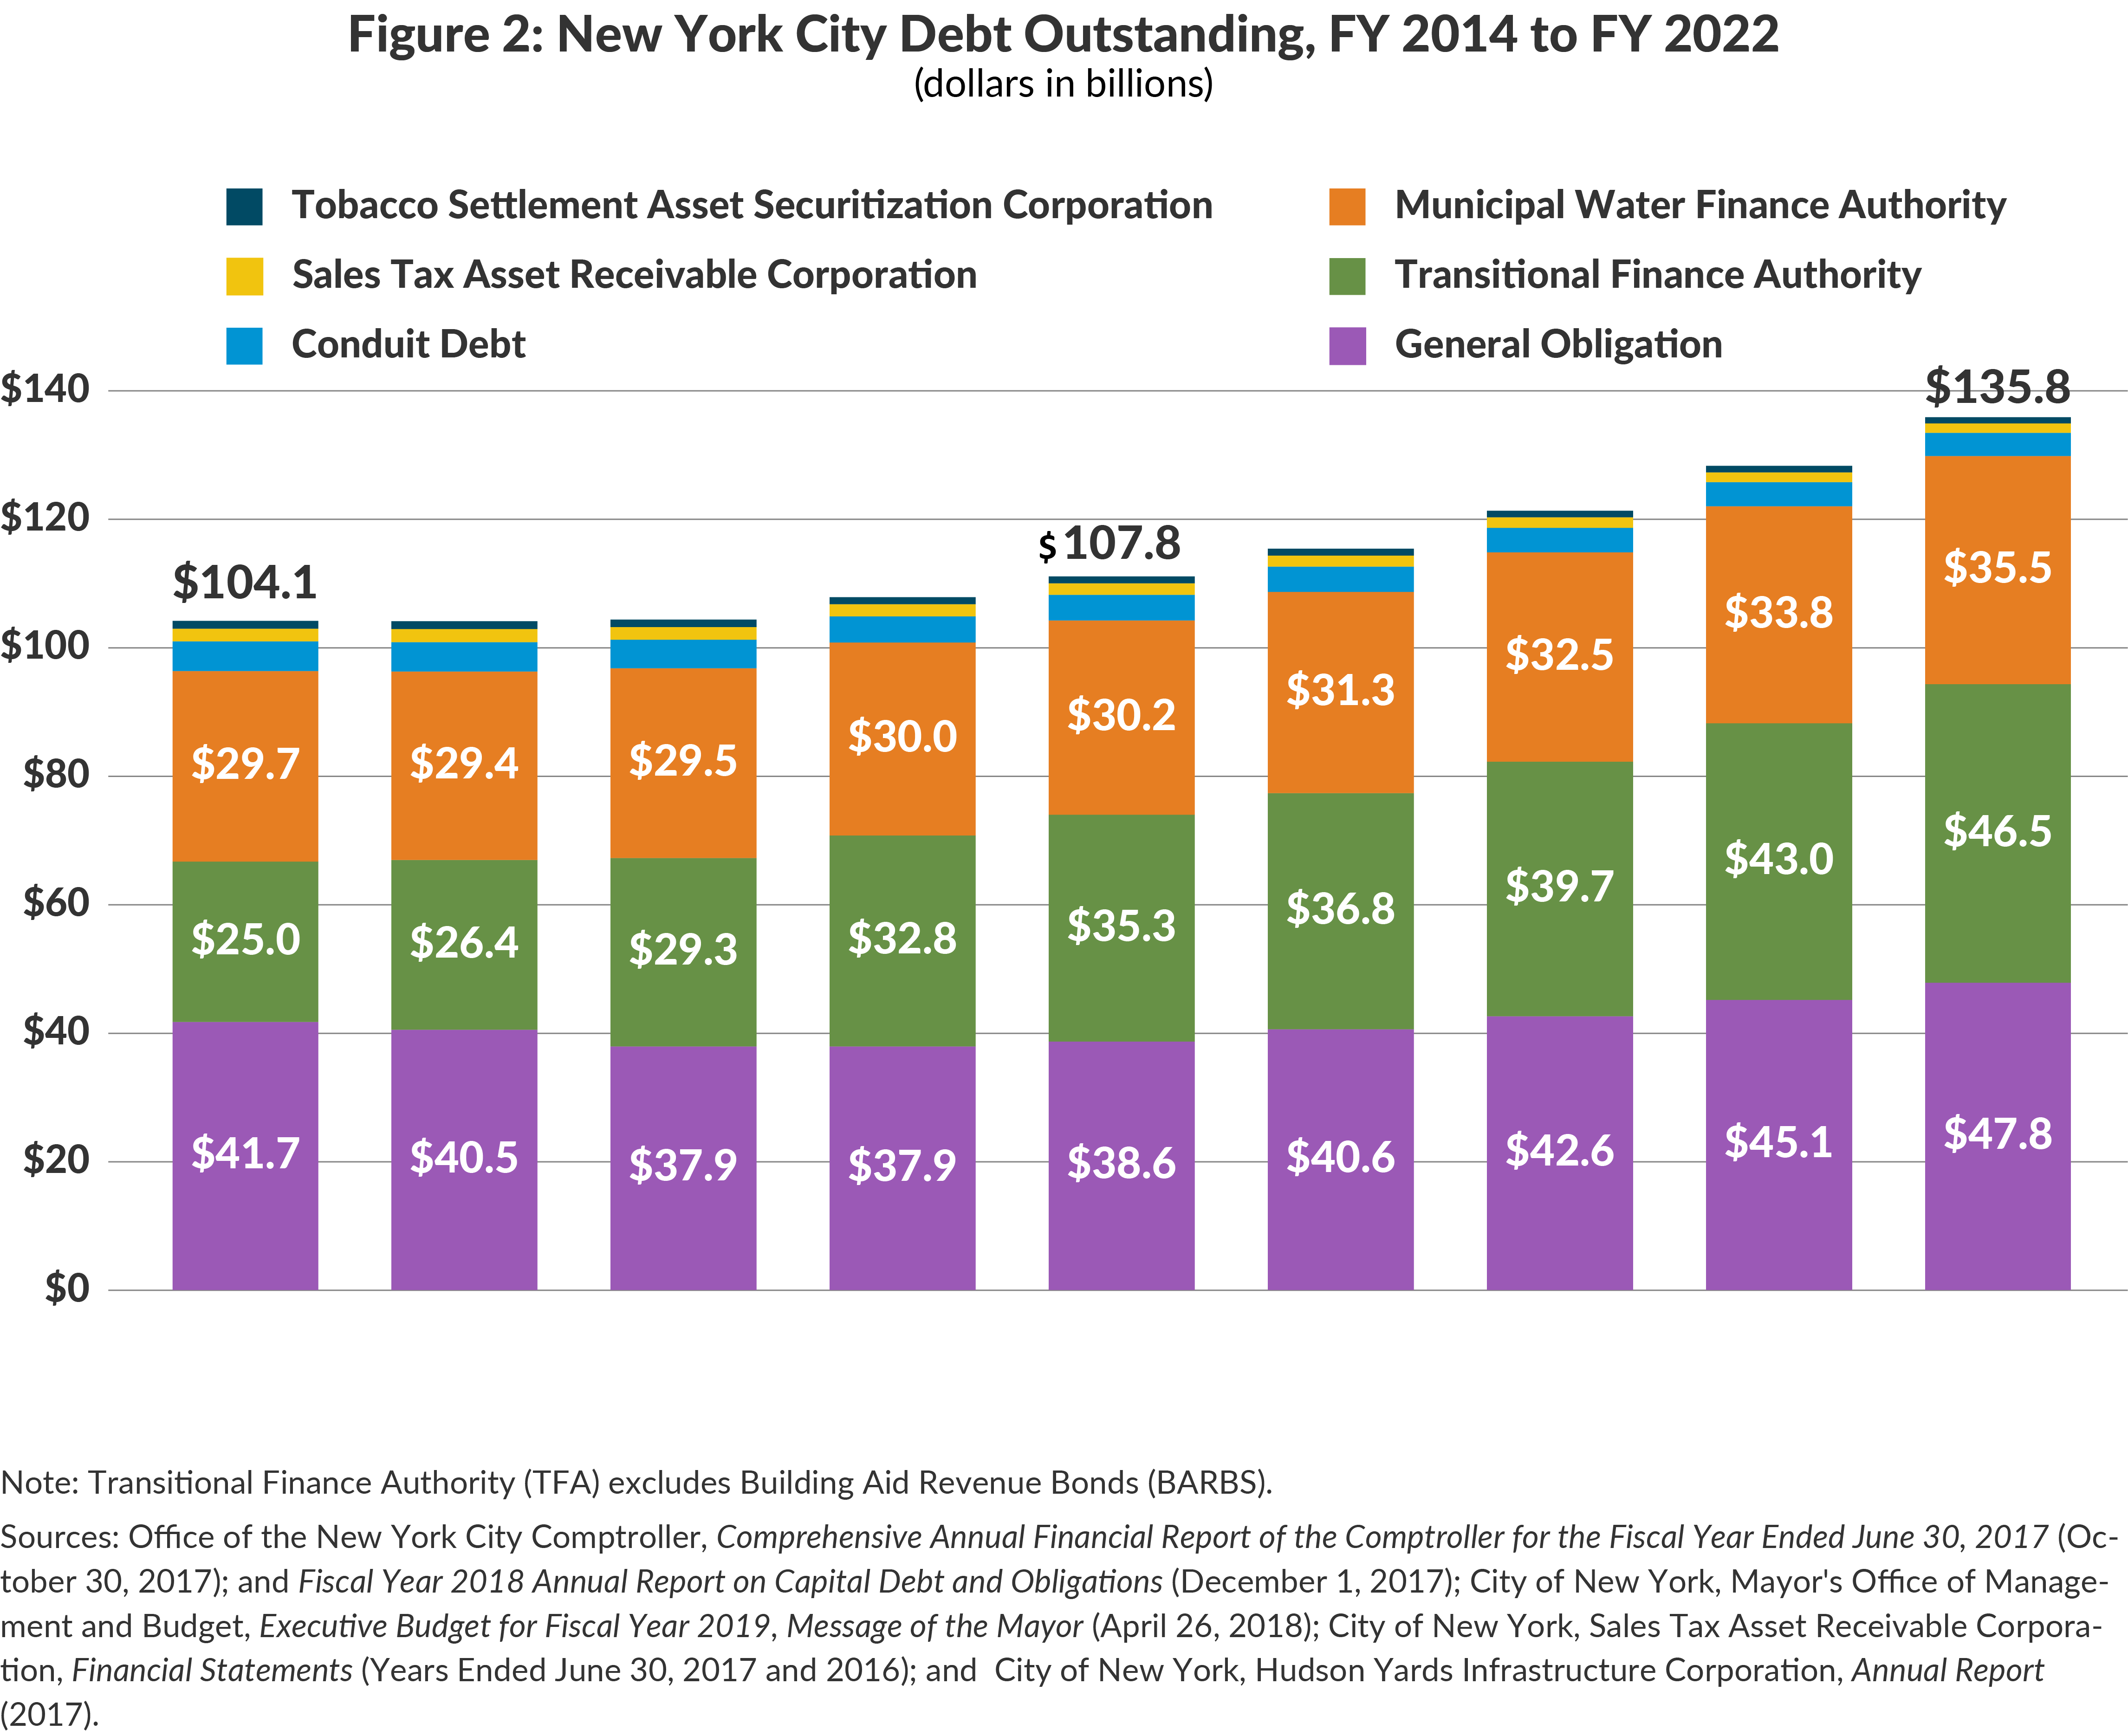 Figure 2: New York City Debt Outstanding, FY 2014 to FY 2022